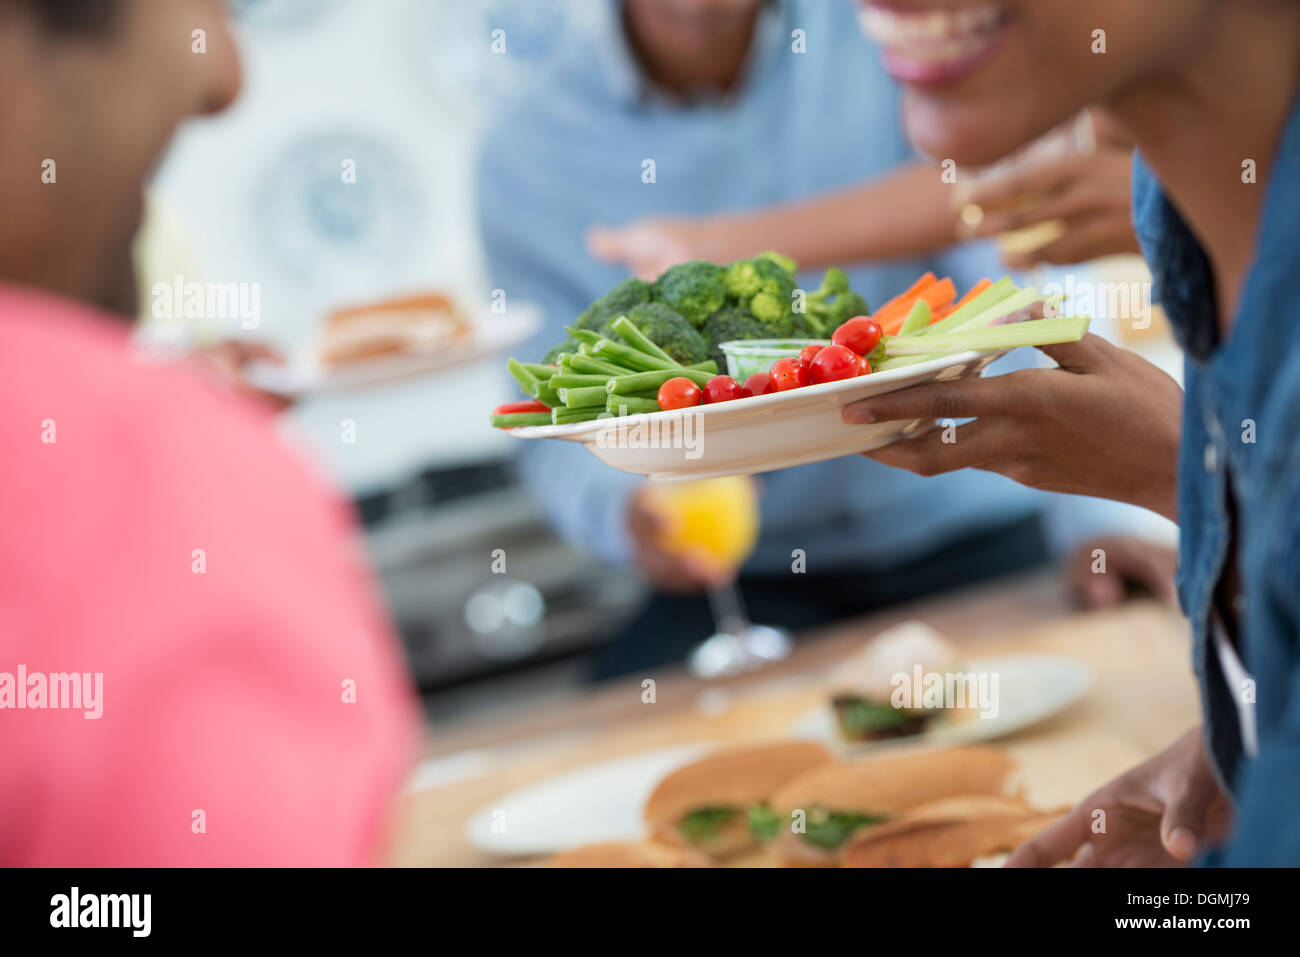 An informal office event. People handing plates of food across a buffet table. - Stock Image